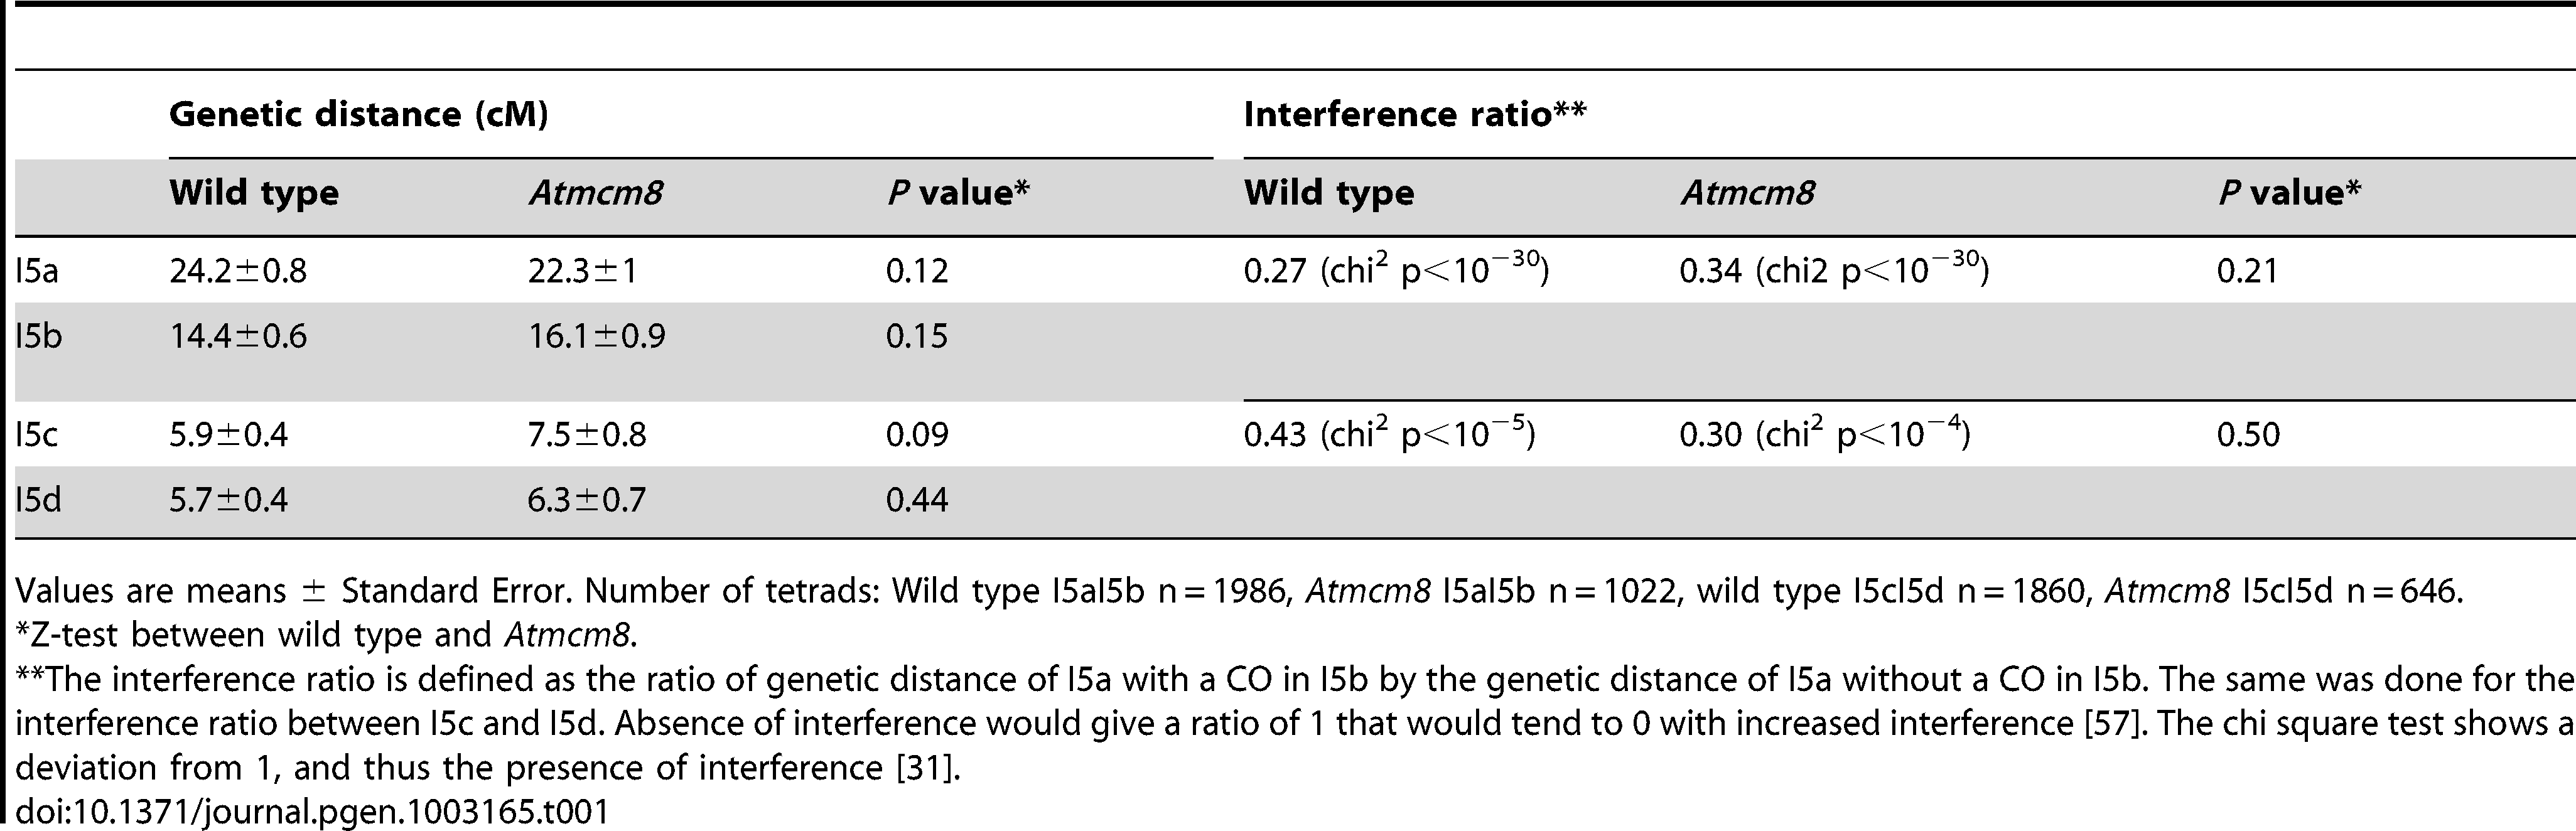 Genetic distances and interference in <i>Atmcm8</i> using FTLs.